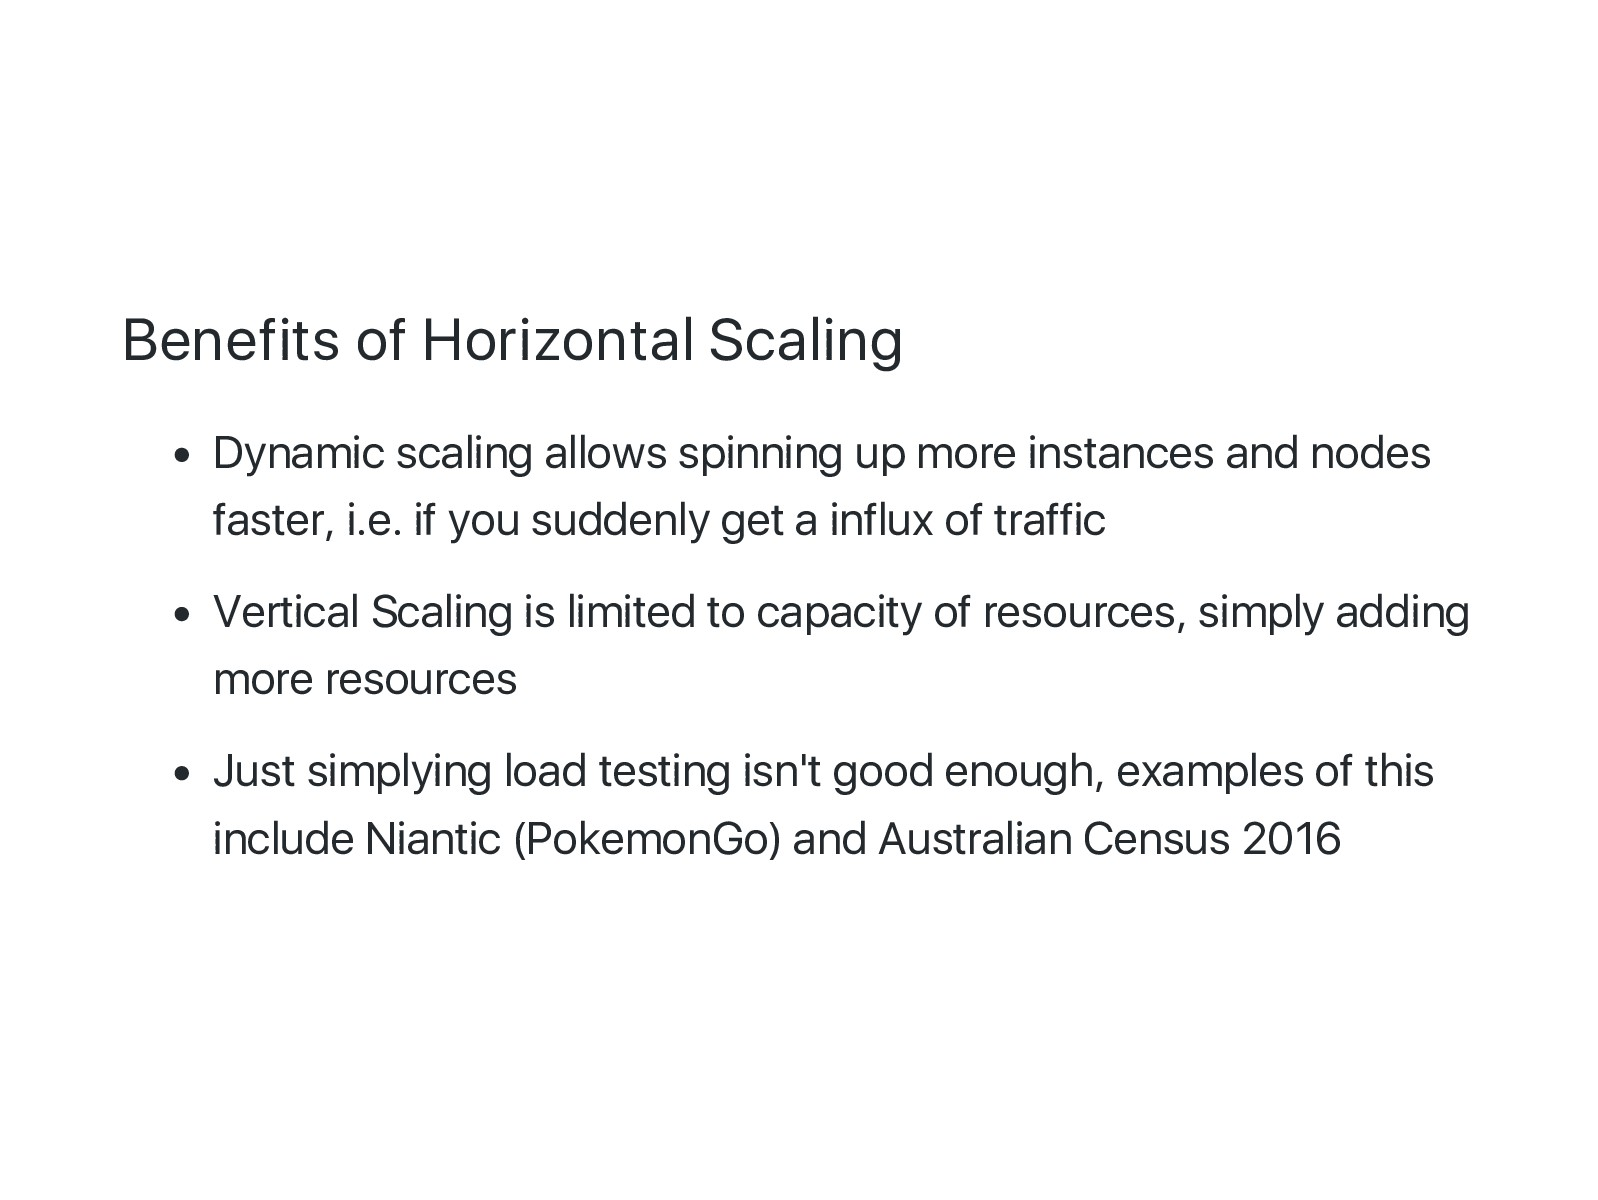 Benefits of Horizontal Scaling Dynamic scaling ...